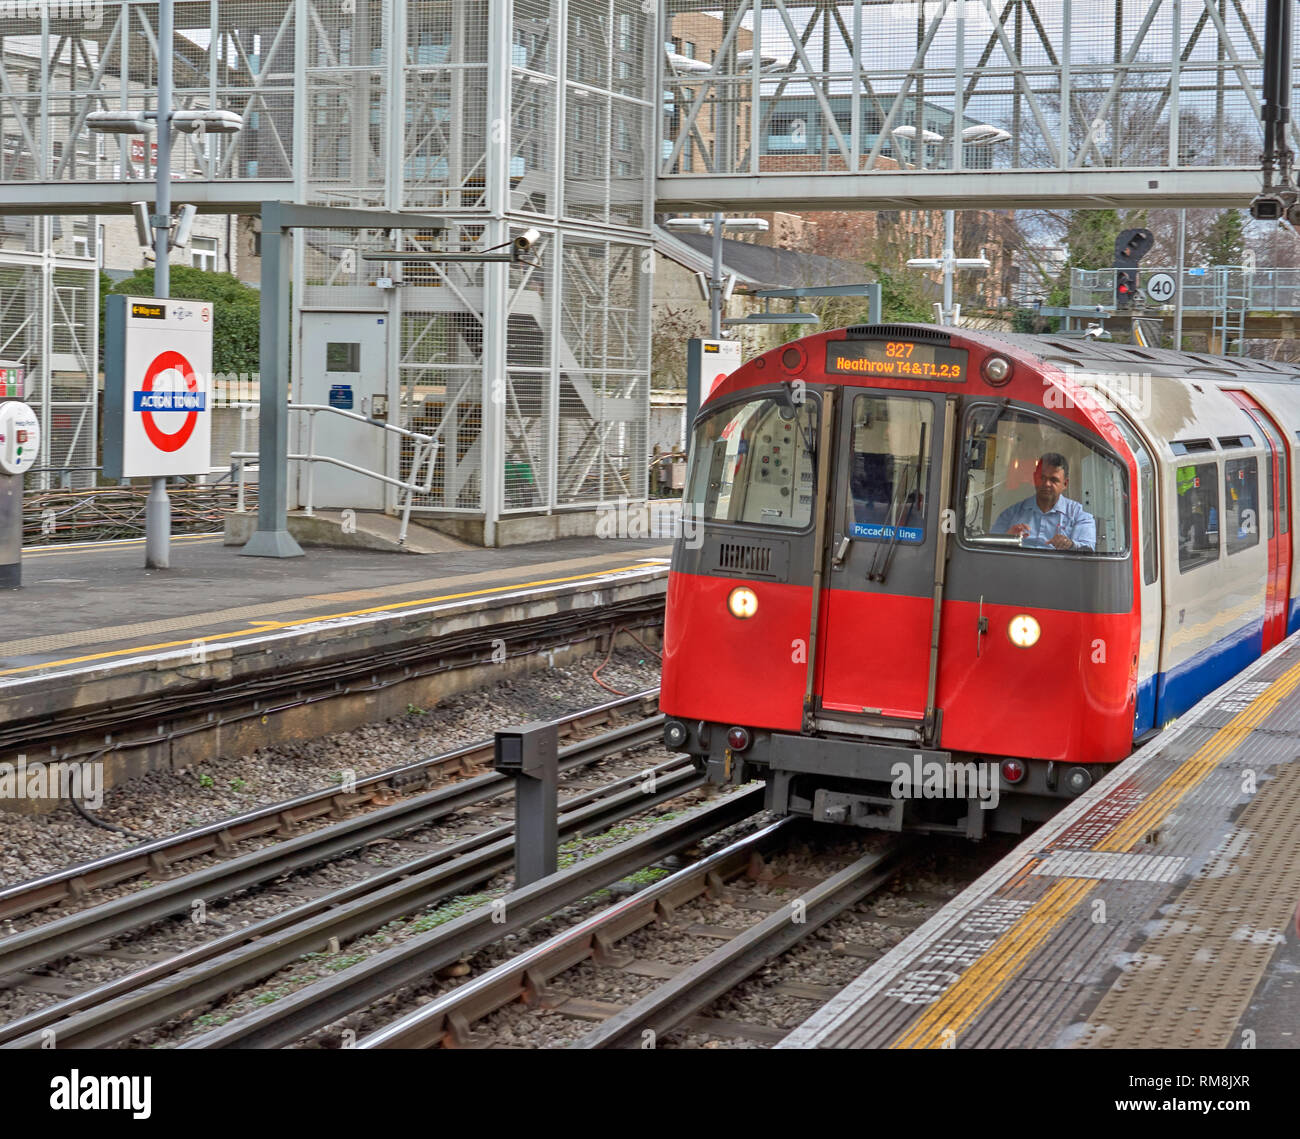 LONDON UNDERGROUND OR TUBE TRAIN ARRIVING AT ACTON TOWN STATION ON PICCADILLY LINE FOR HEATHROW TERMINALS - Stock Image